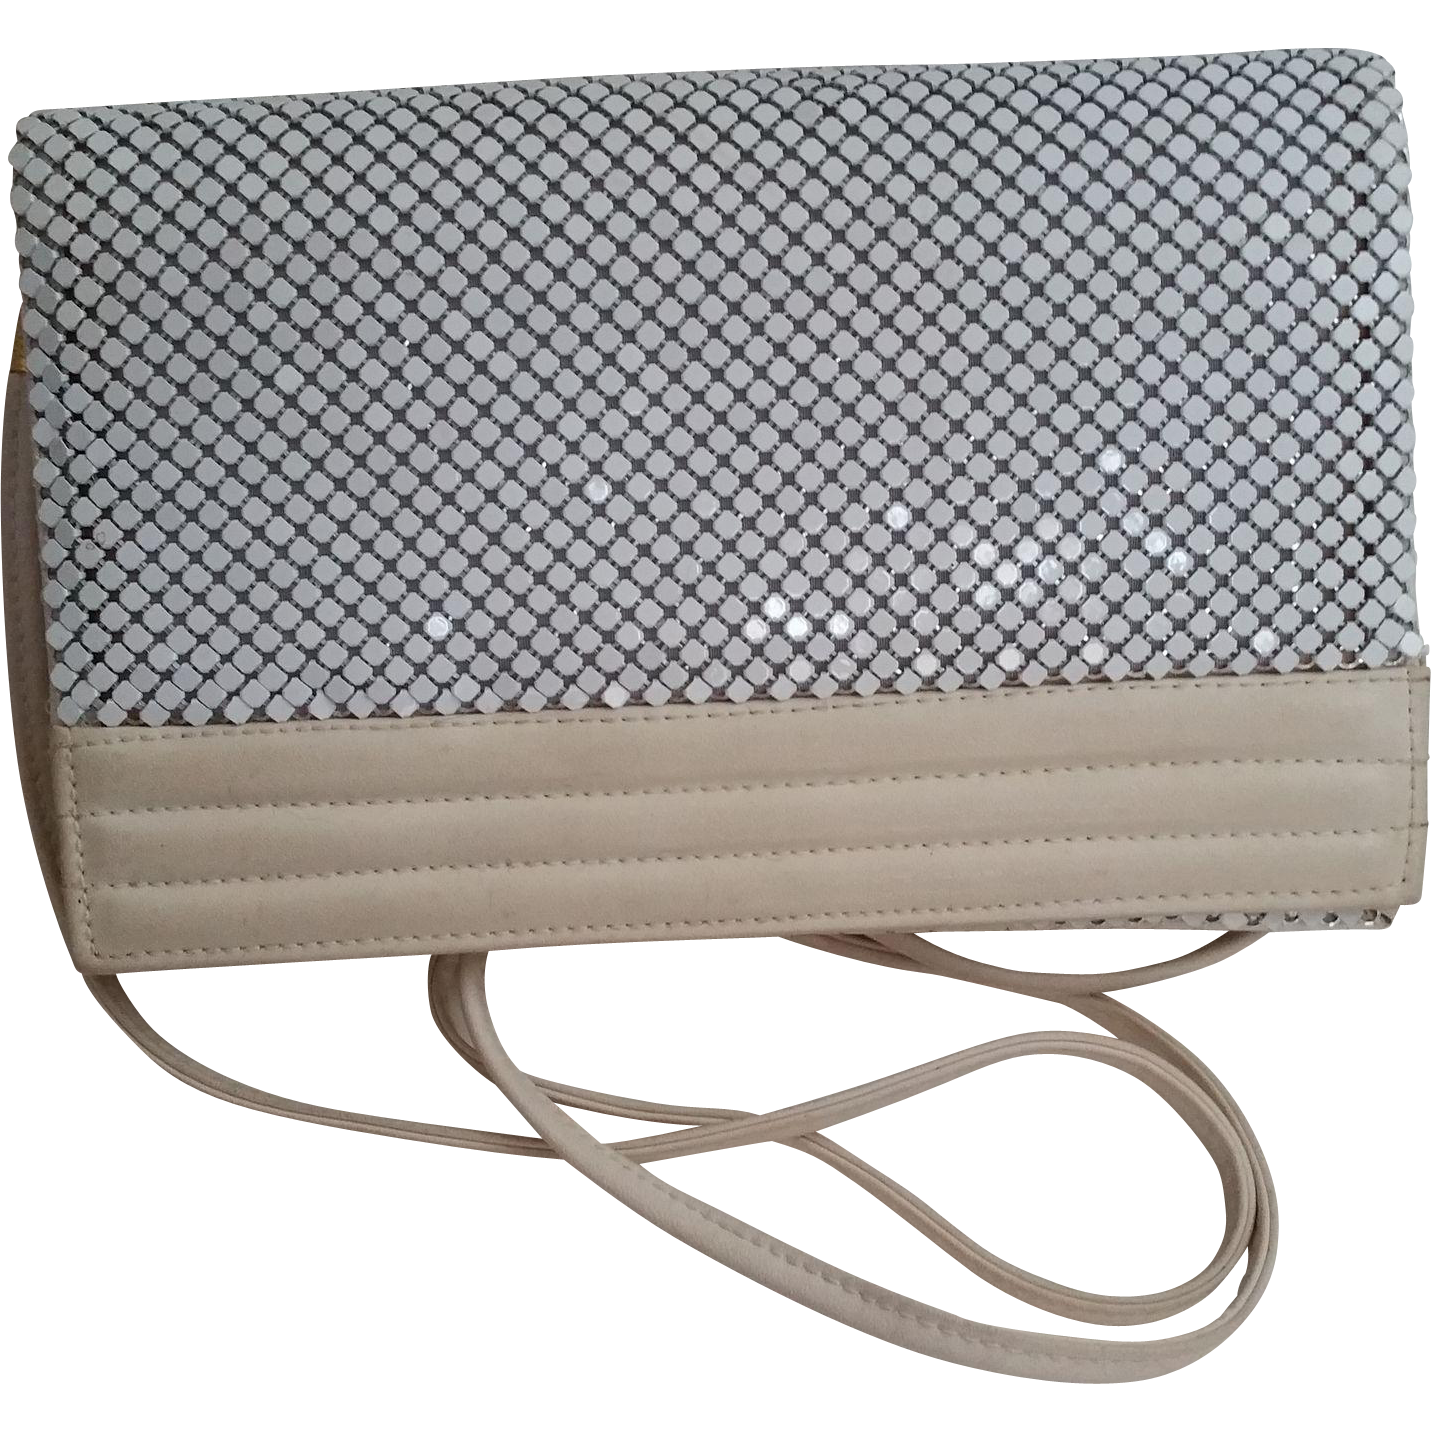 Whiting and Davis Cross Body or Clutch Purse Handbag